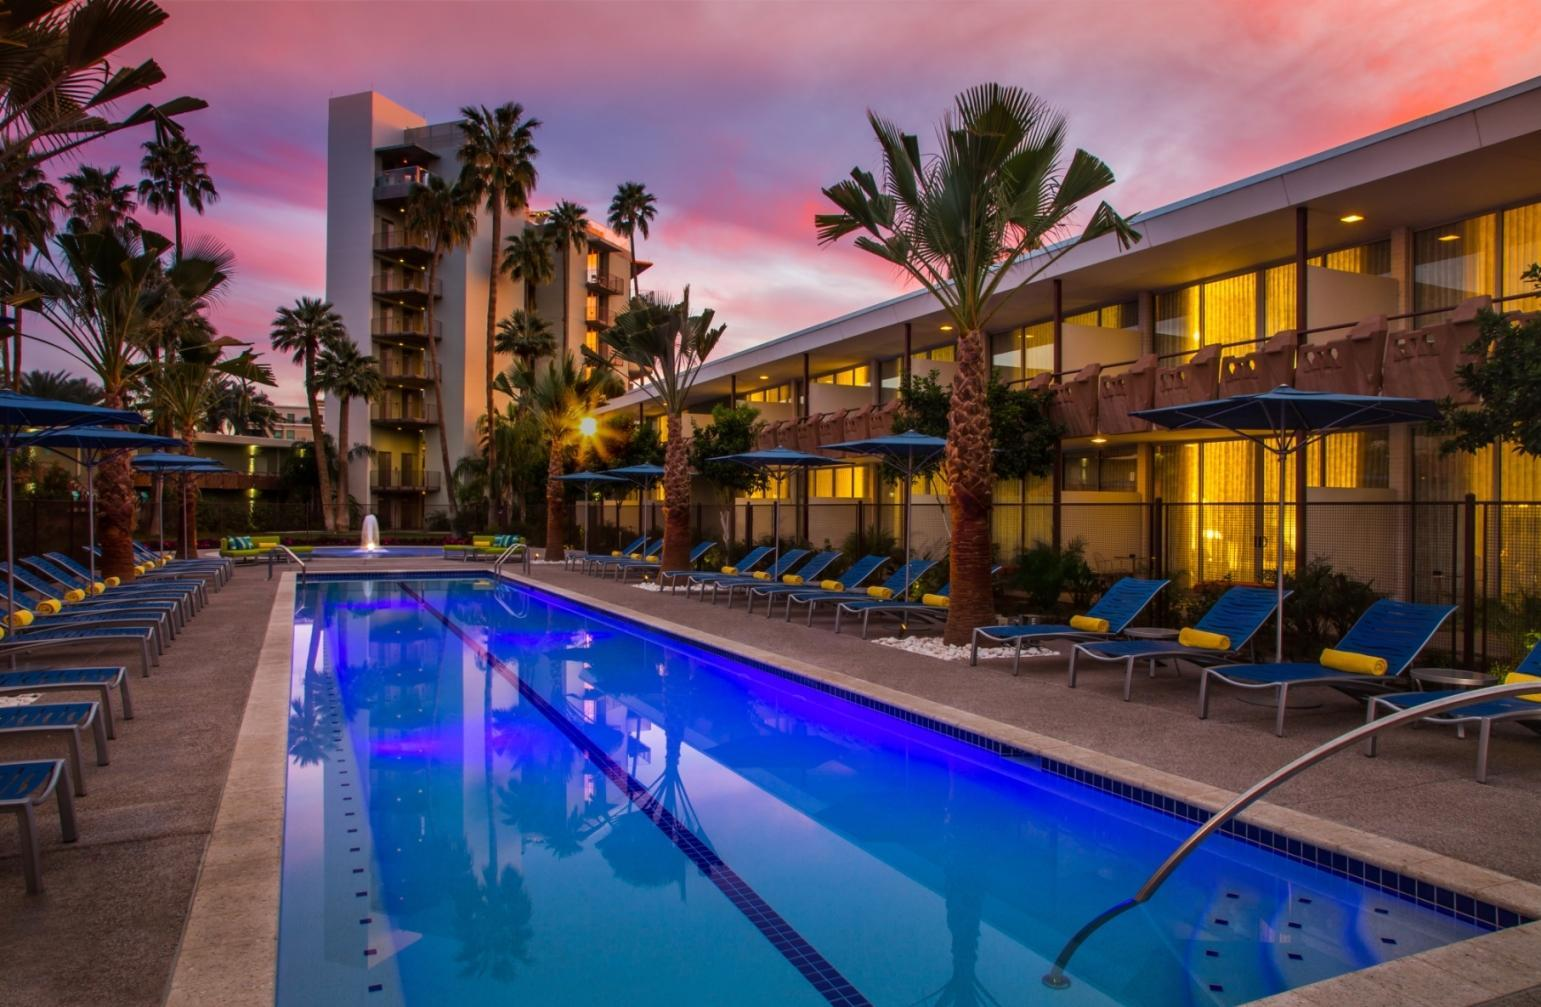 Hotel review: Hotel Valley Ho   The Independentindependent_brand_ident_LOGOUntitled